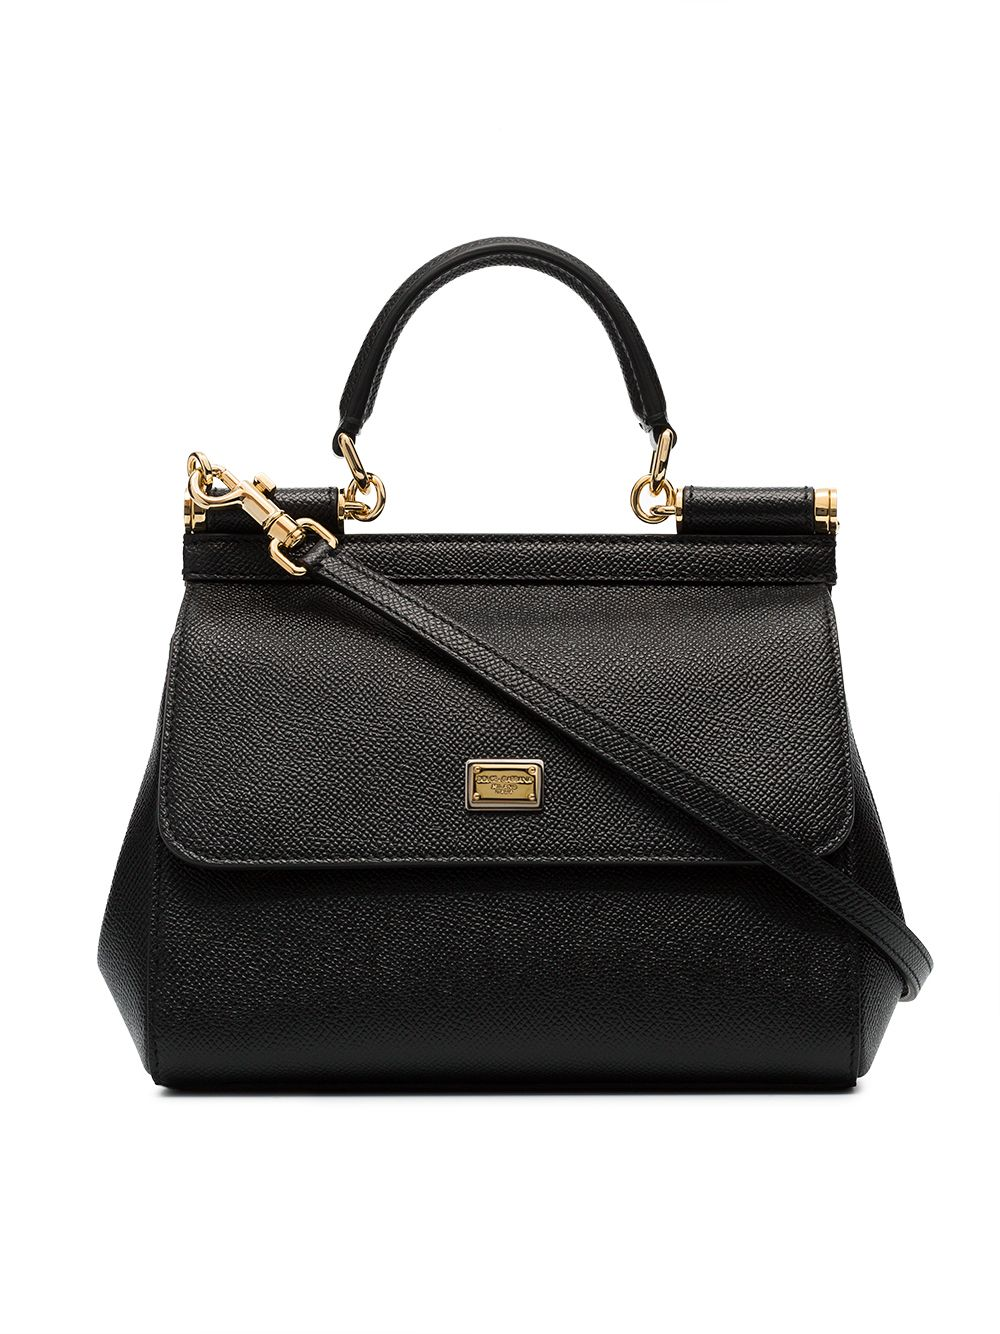 Dolce & Gabbana black sicily small leather bag von Dolce & Gabbana